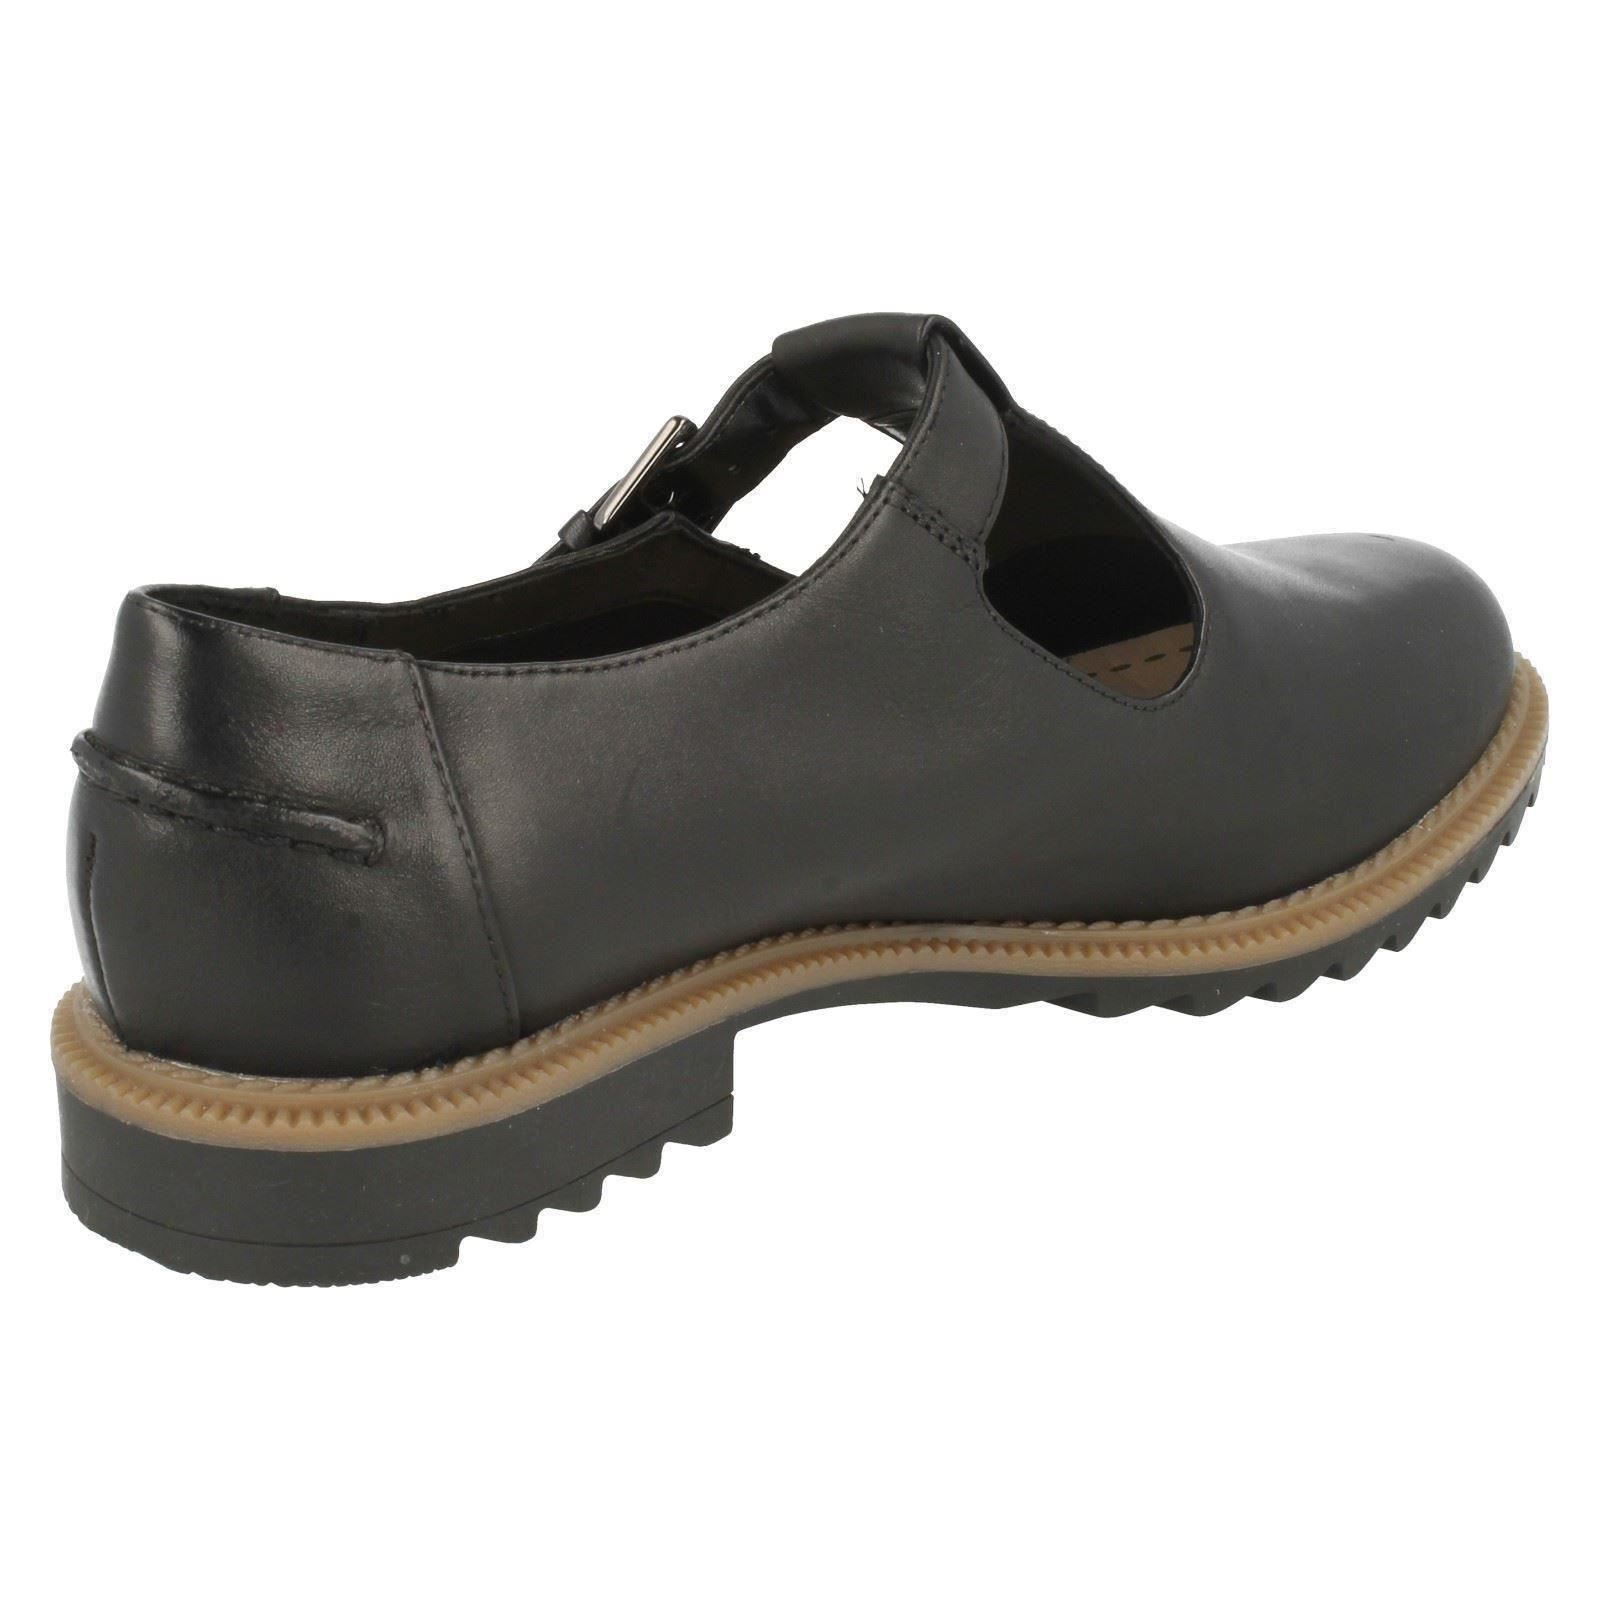 Buy Clarks Shoes Sale